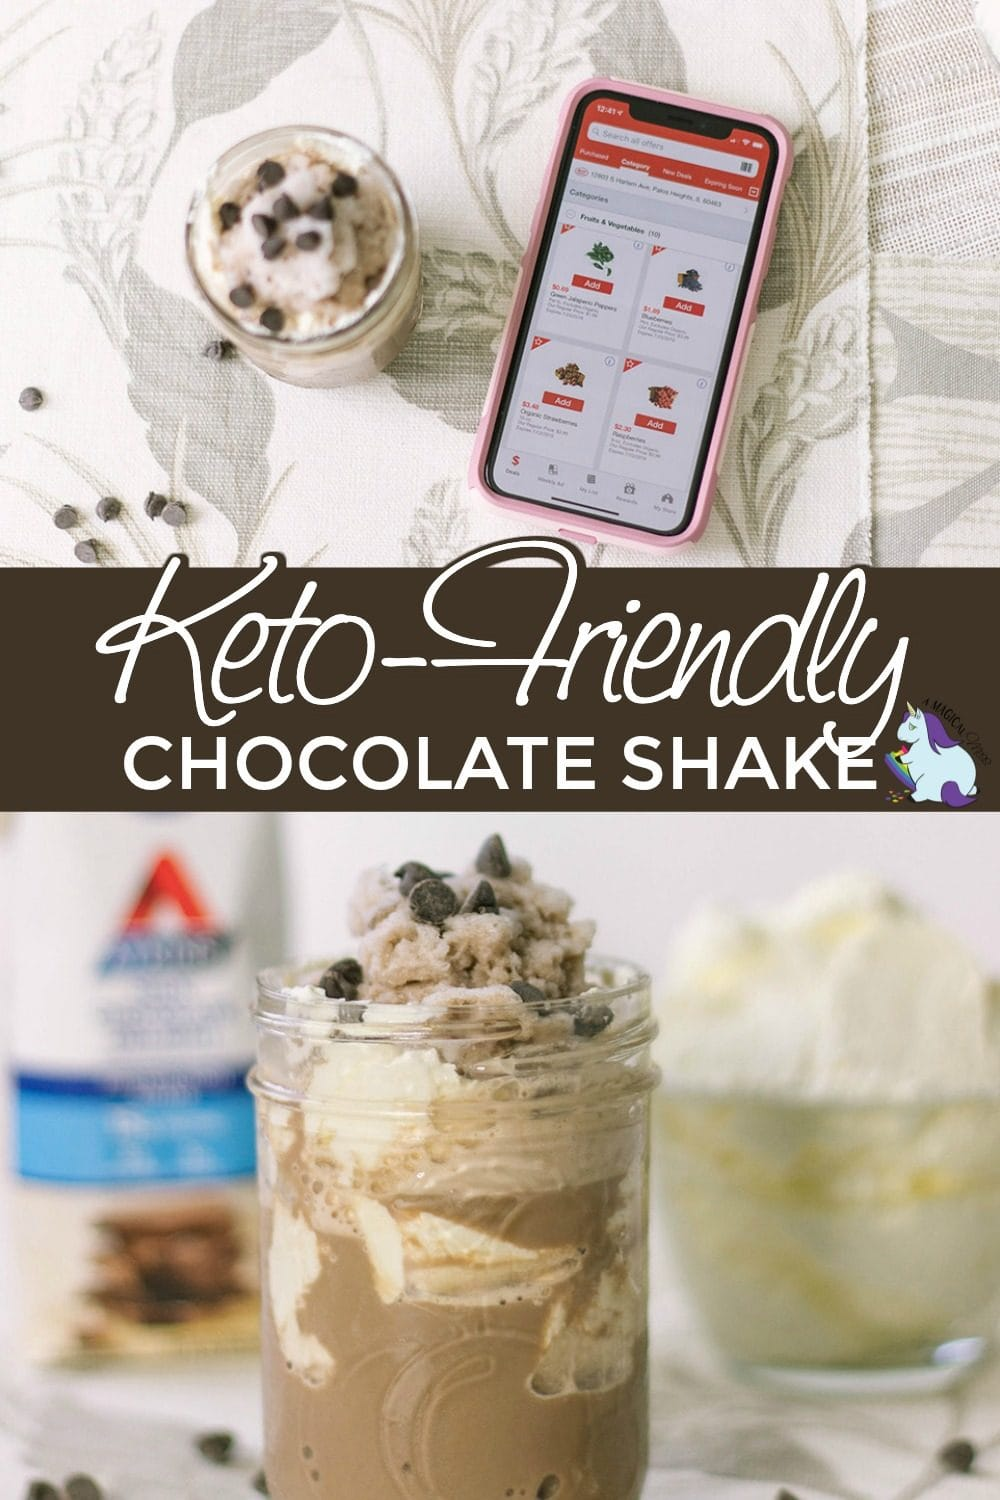 Low-carb chocolate shake with whipped cream and chips